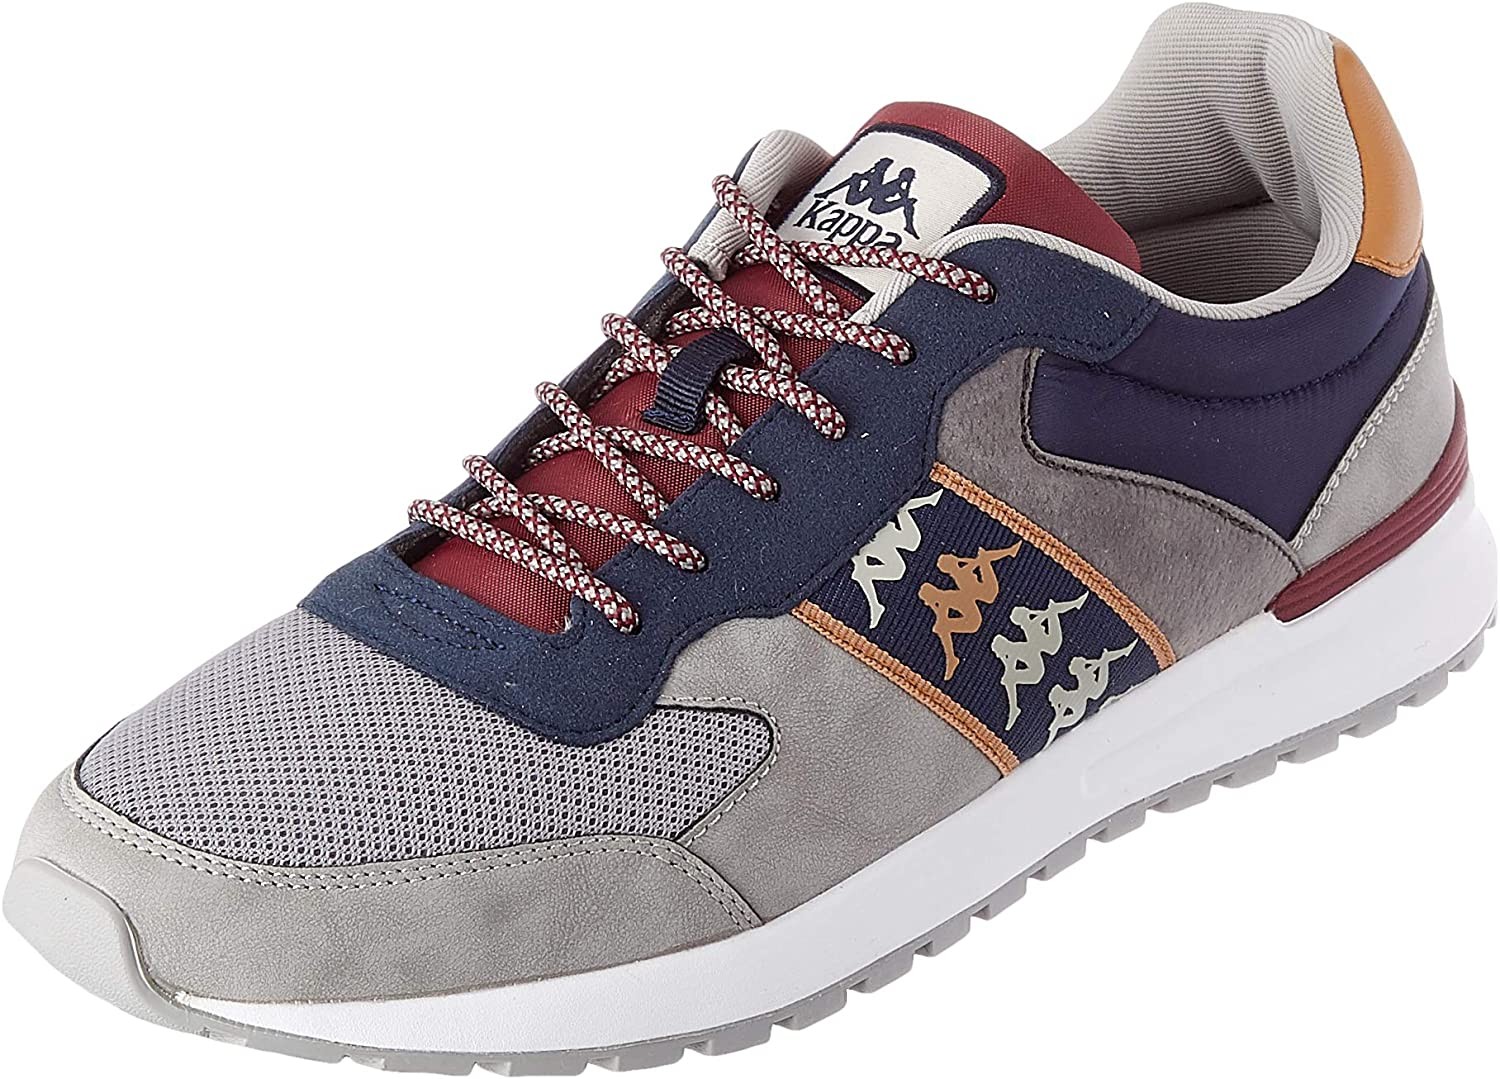 Kappa Men's Top Shoe 67% OFF of lowest price fixed price Track